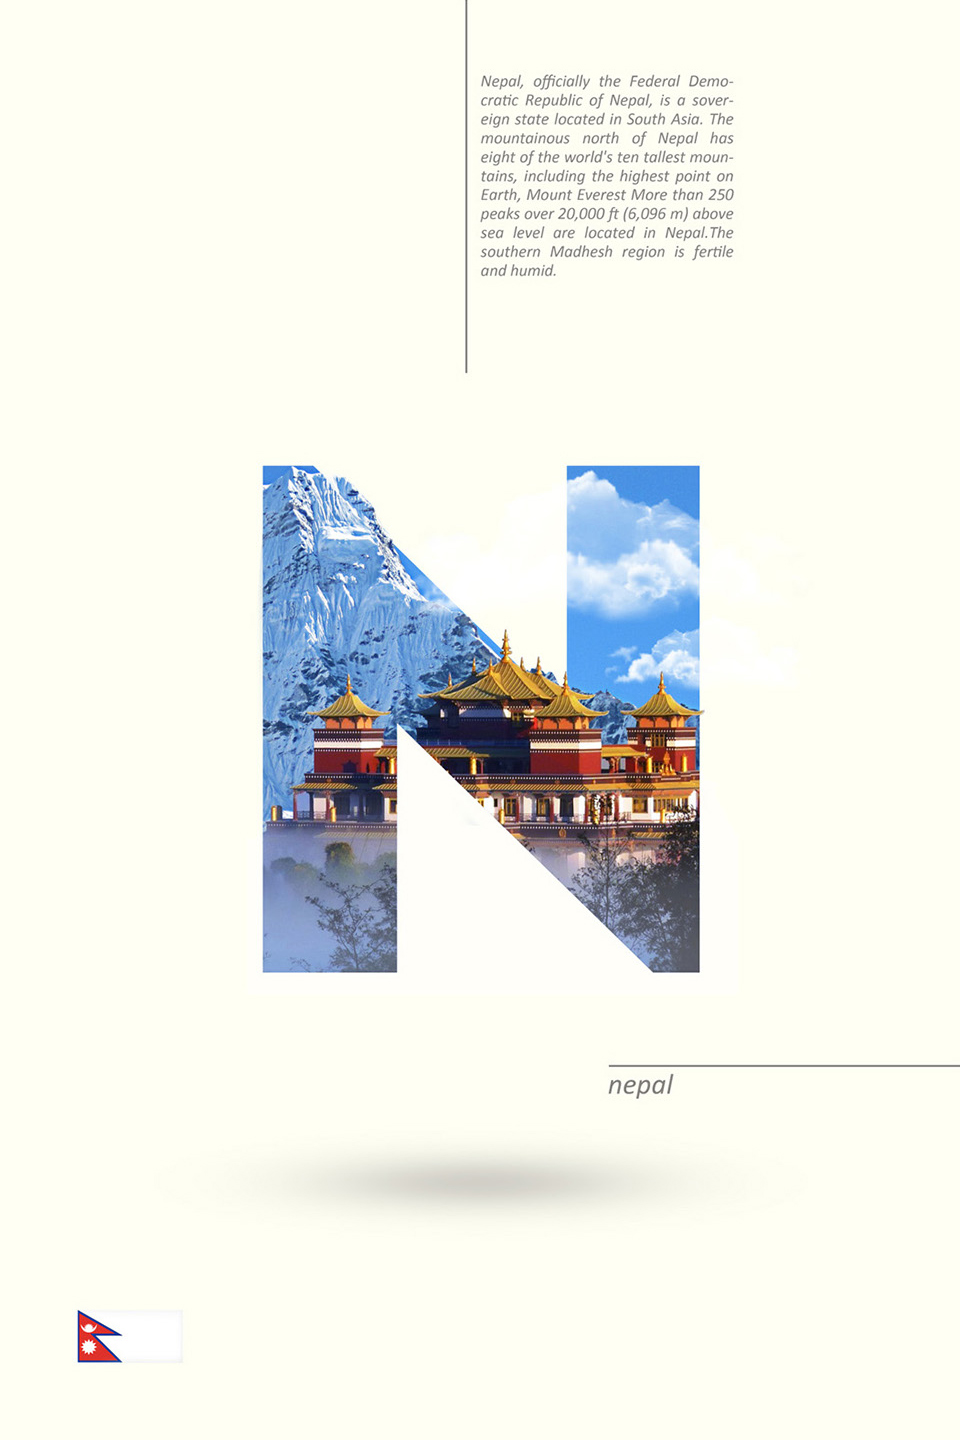 Beautiful Alphabet Series Of Countries And Their Iconic Landmarks - Nepal